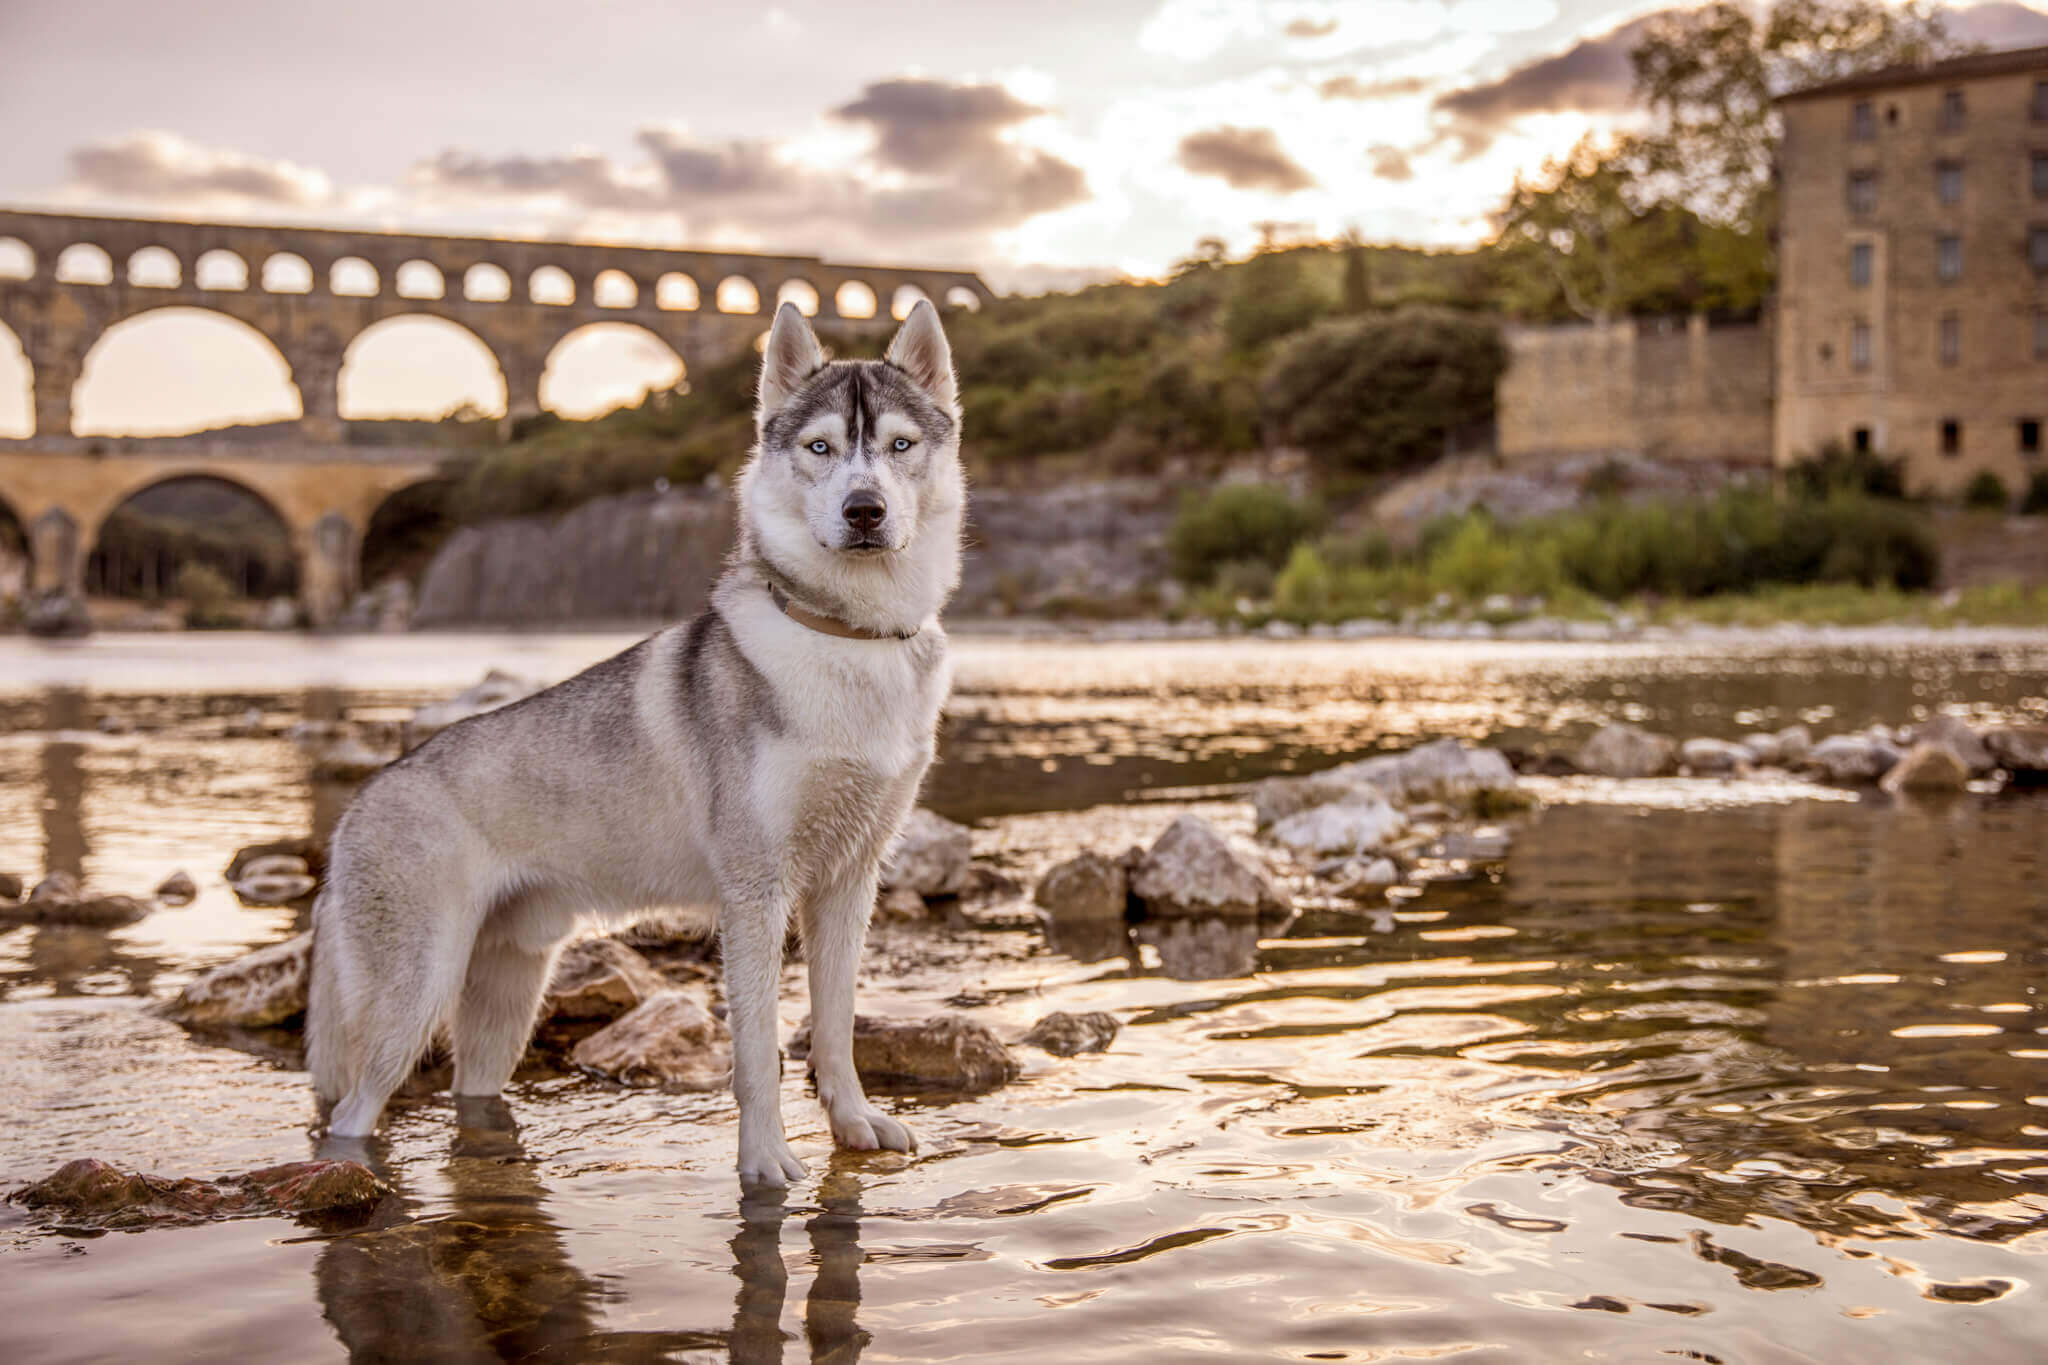 Mitsuo the Husky at the Pont du Gard